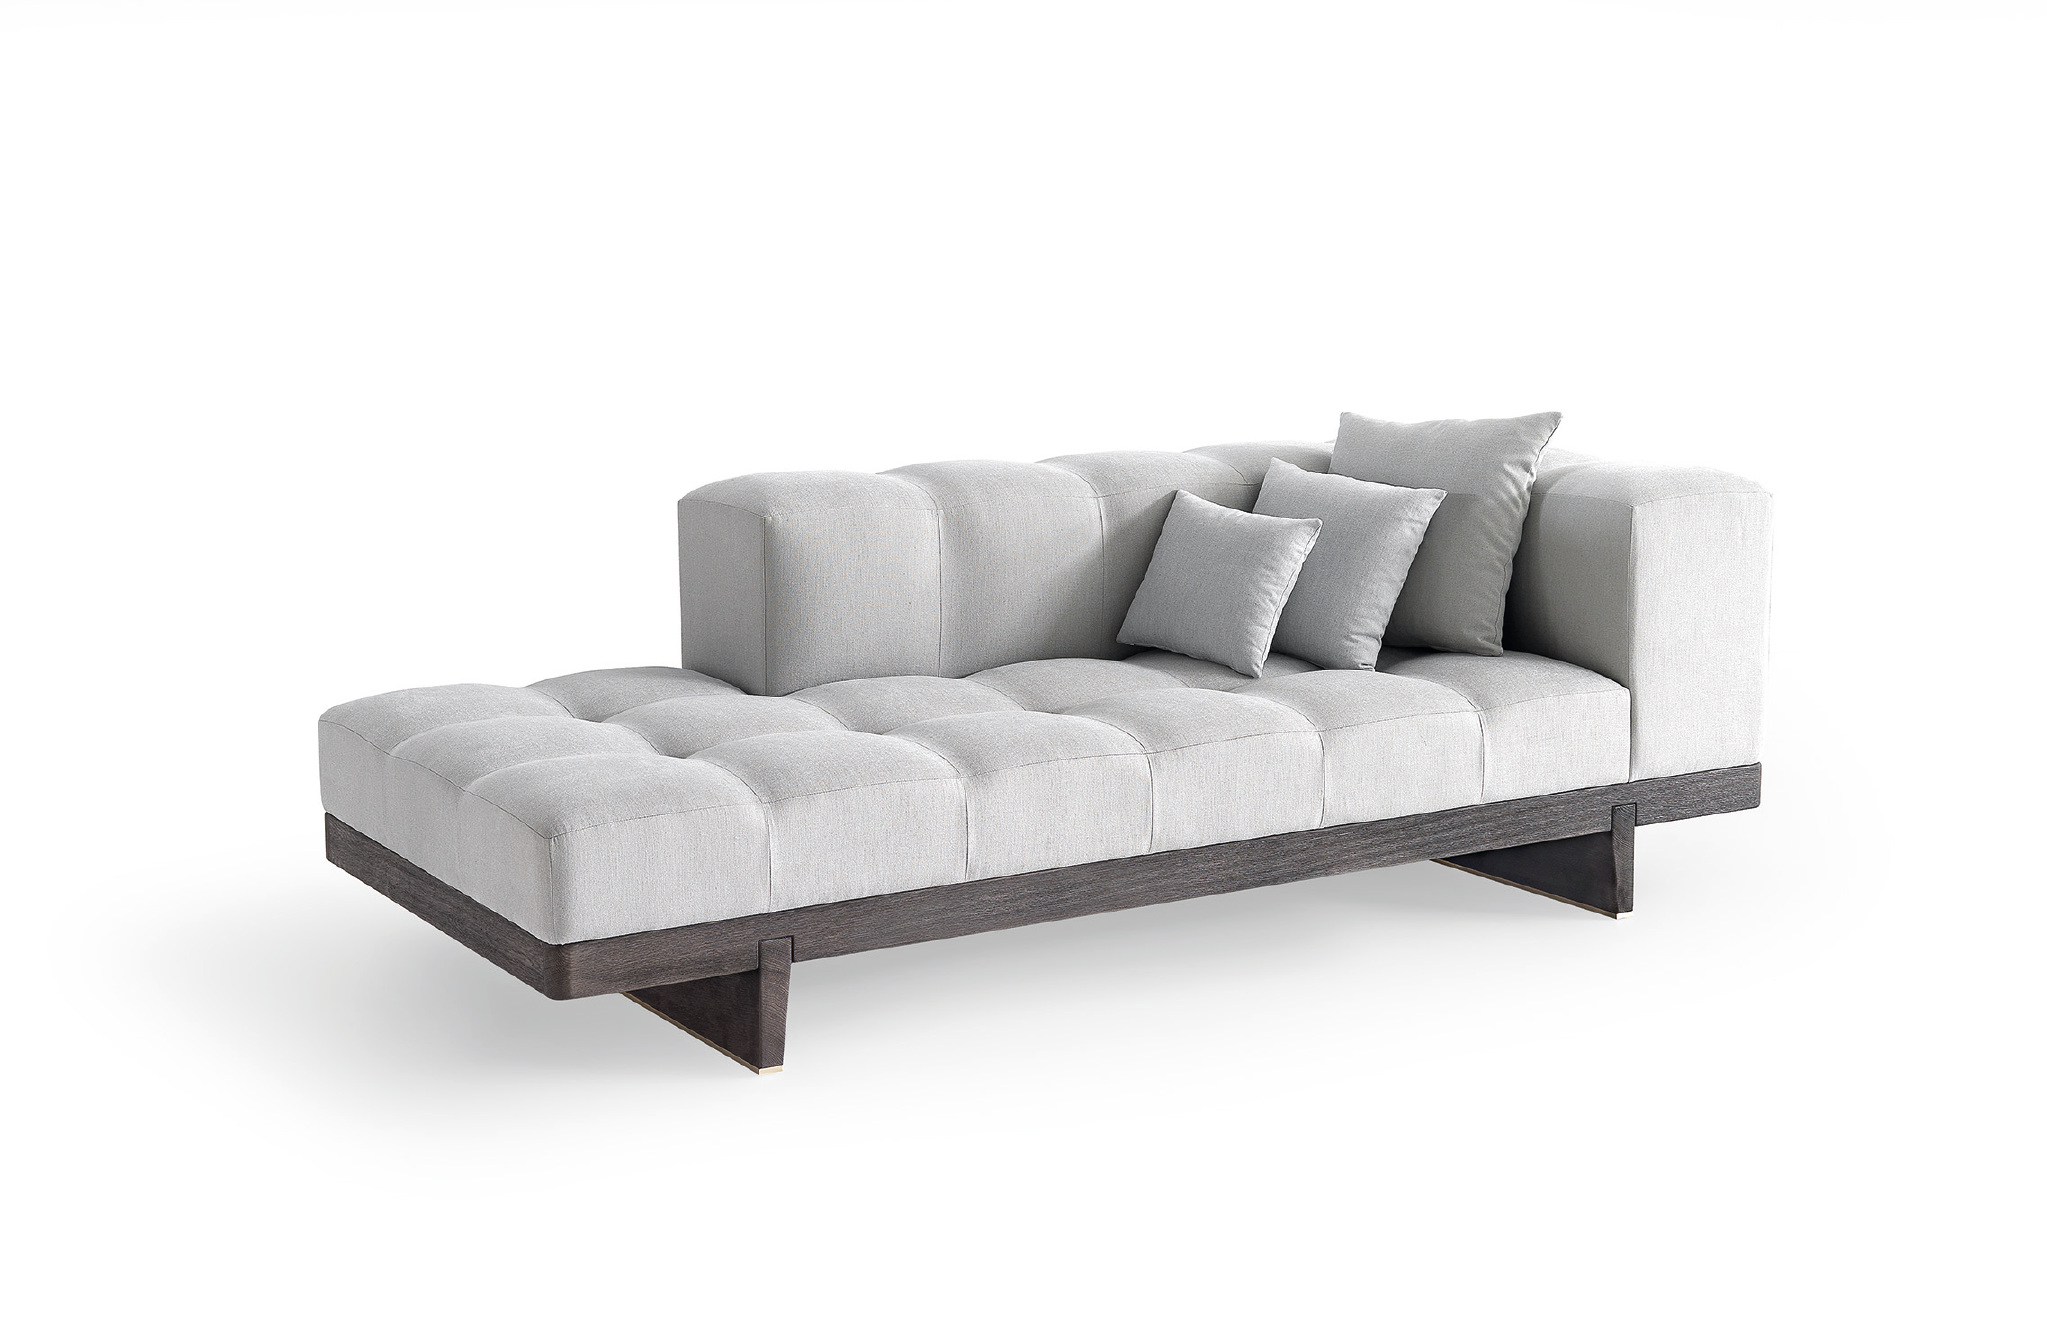 Mobil Fresno InteriVision Royal sofa